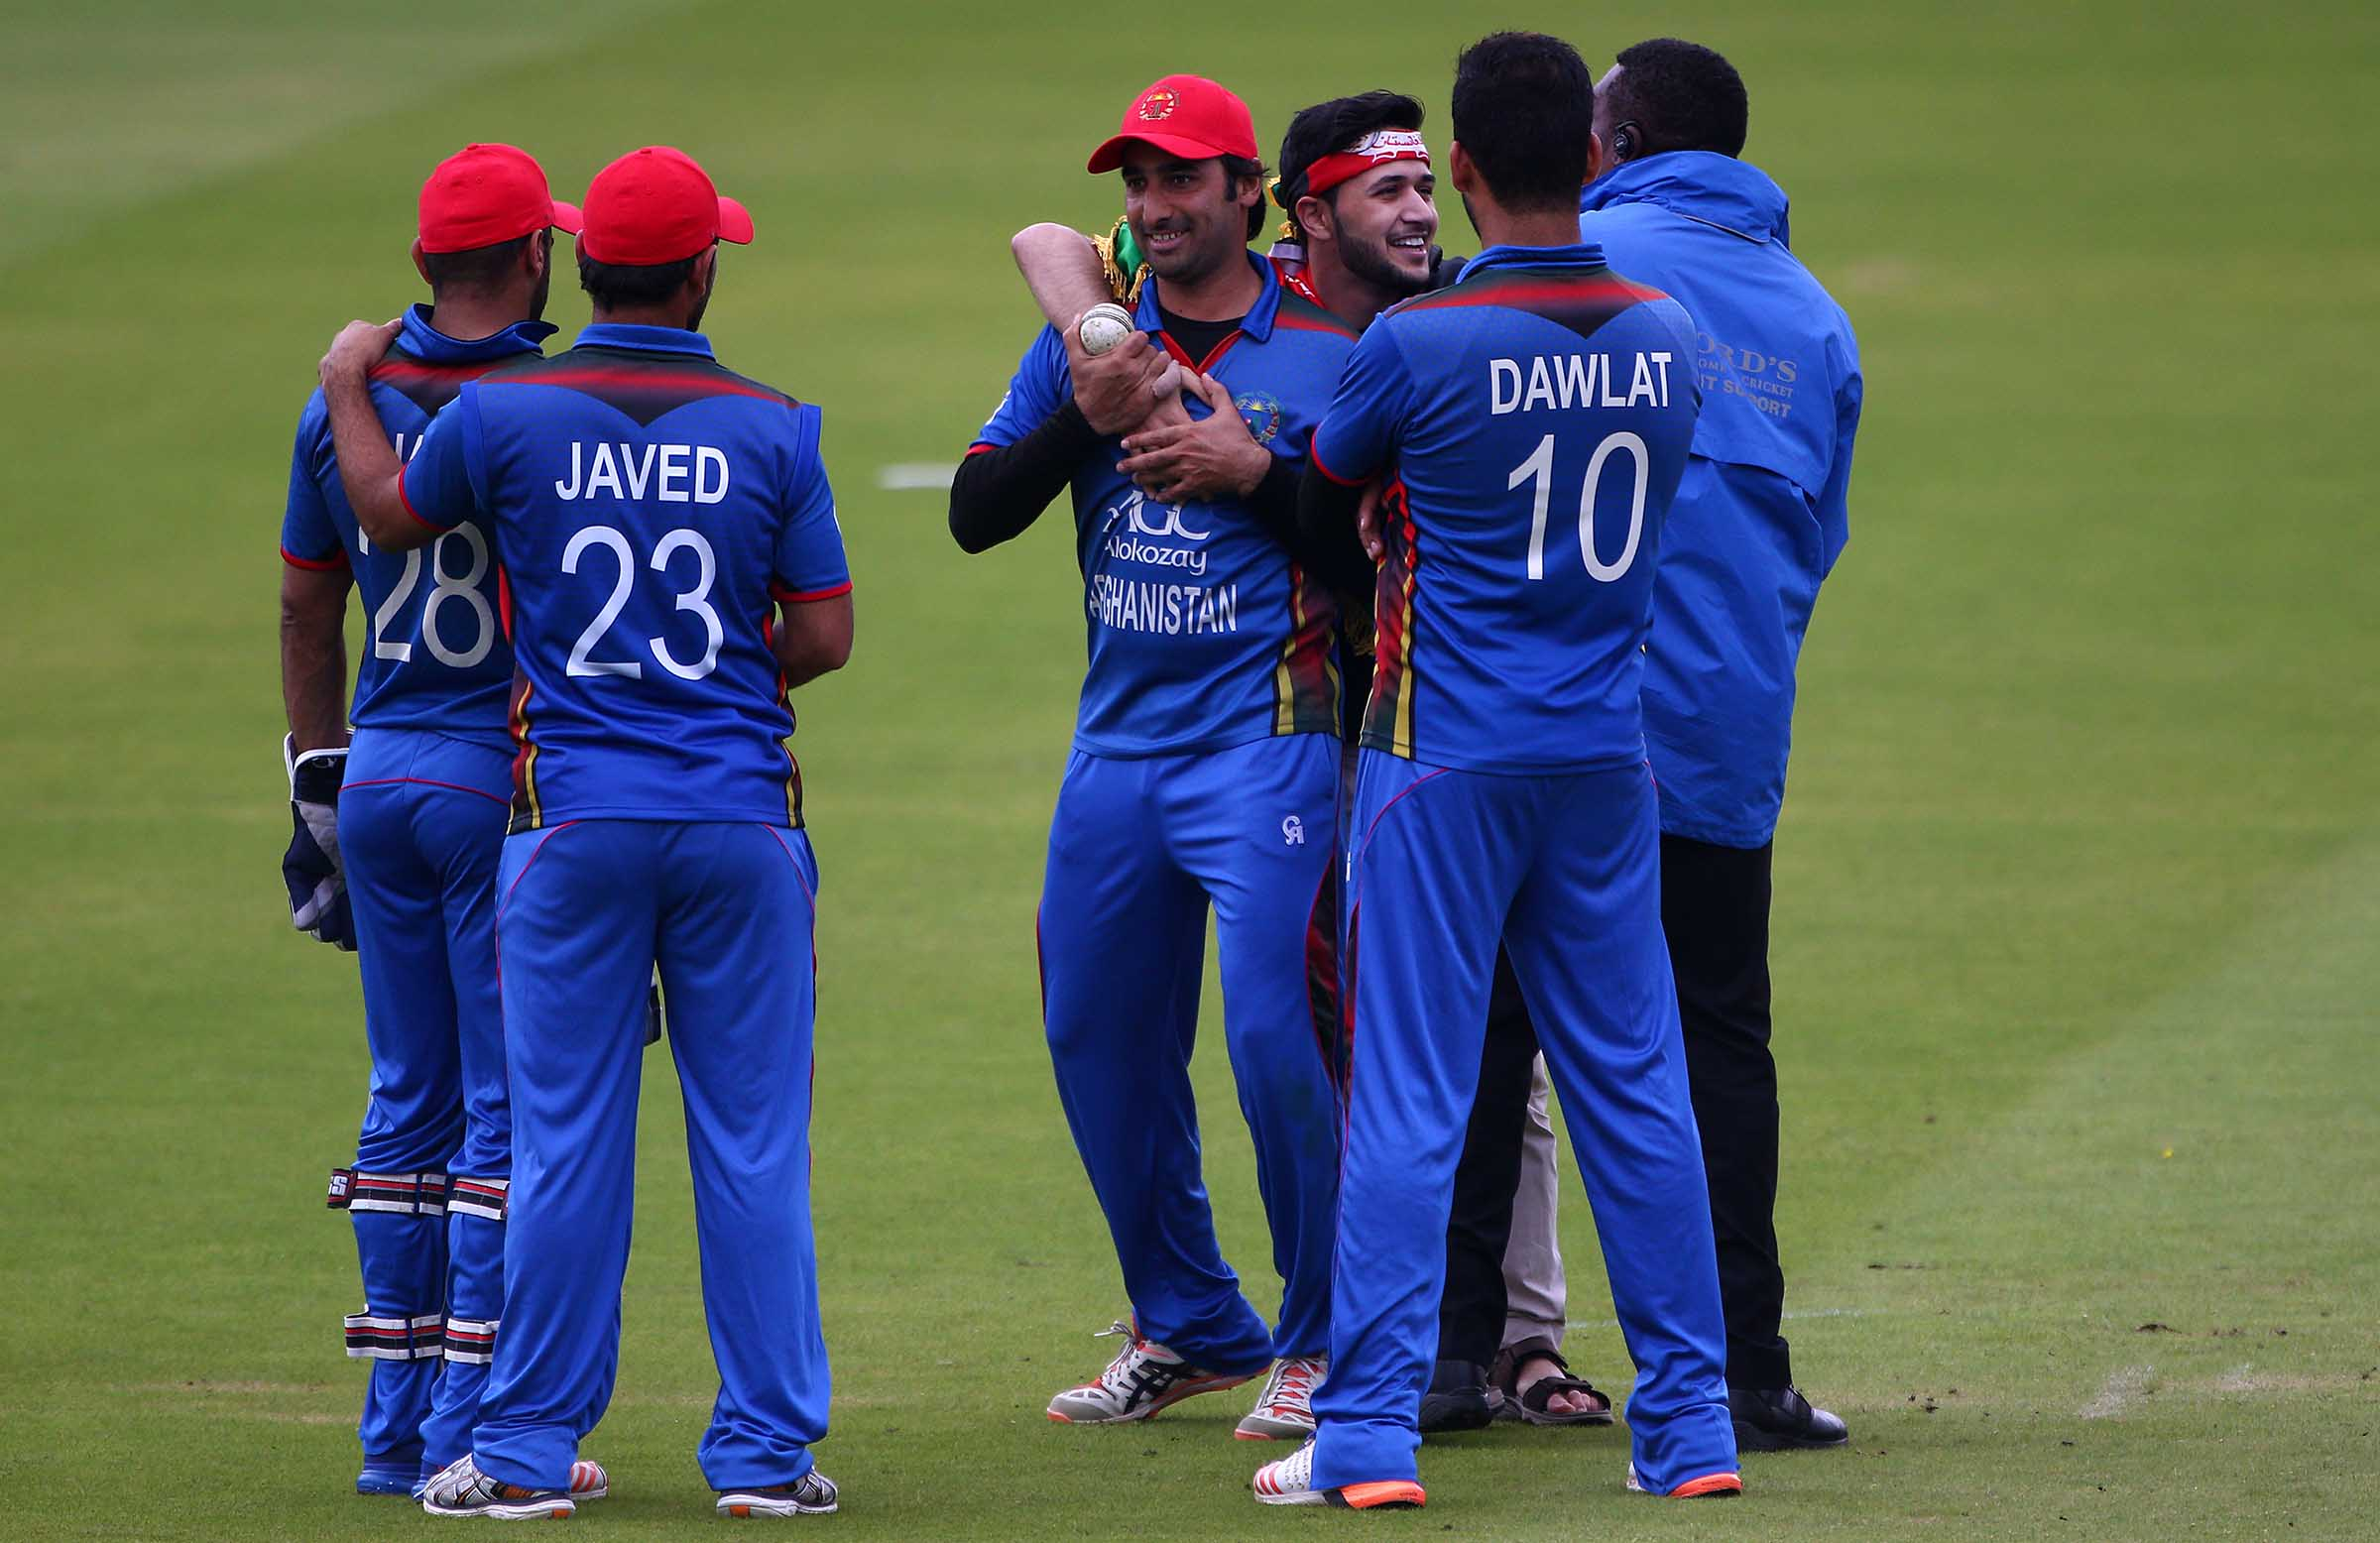 Afghanistan A replaces Aust A in series